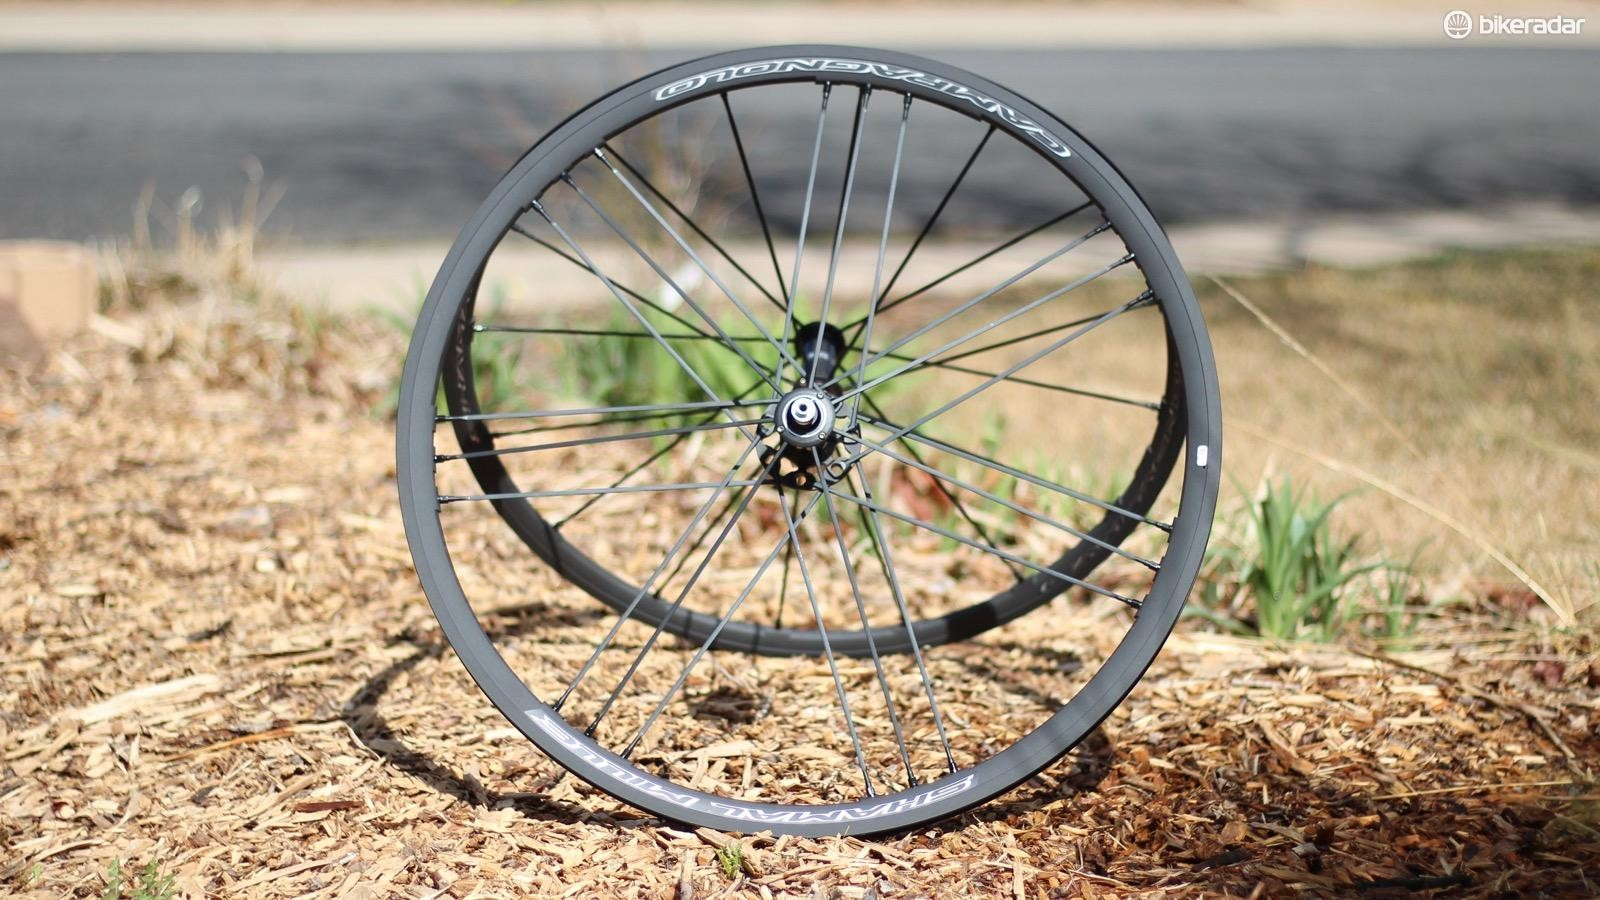 The Campagnolo Shamal Mille is a lightweight (1,490g) alloy clincher